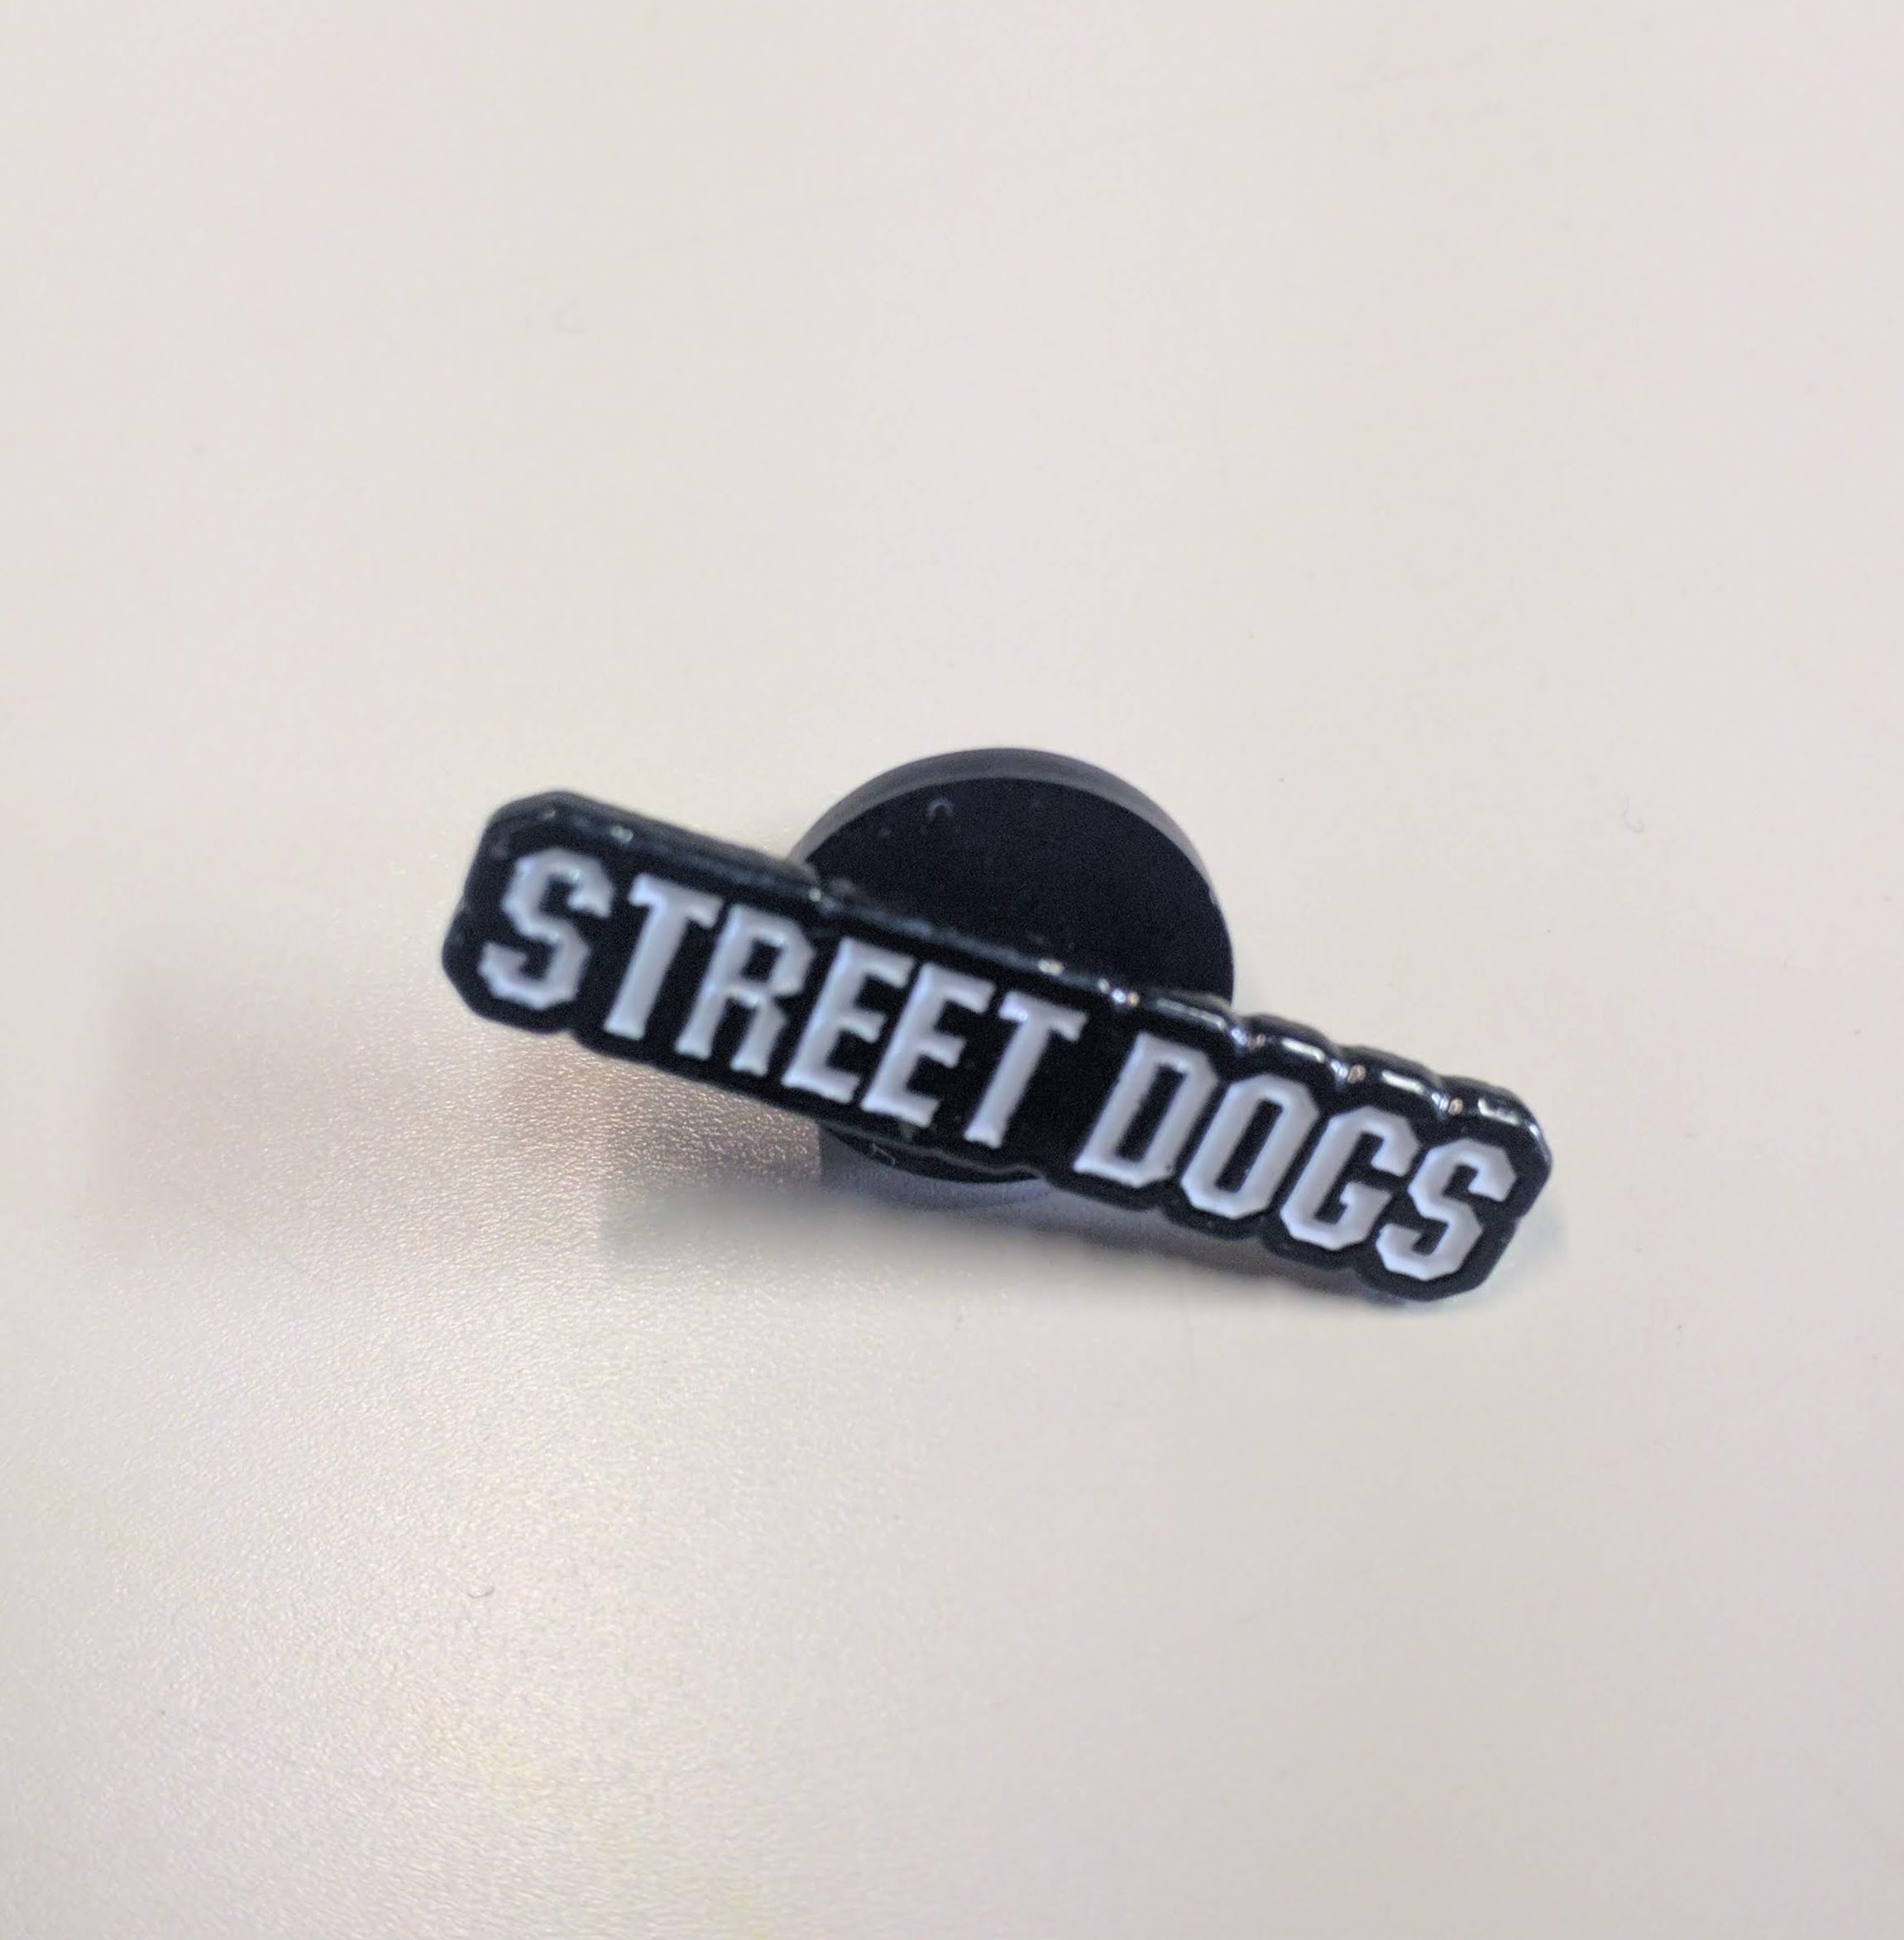 Street Dogs lettering - Metal-Pin